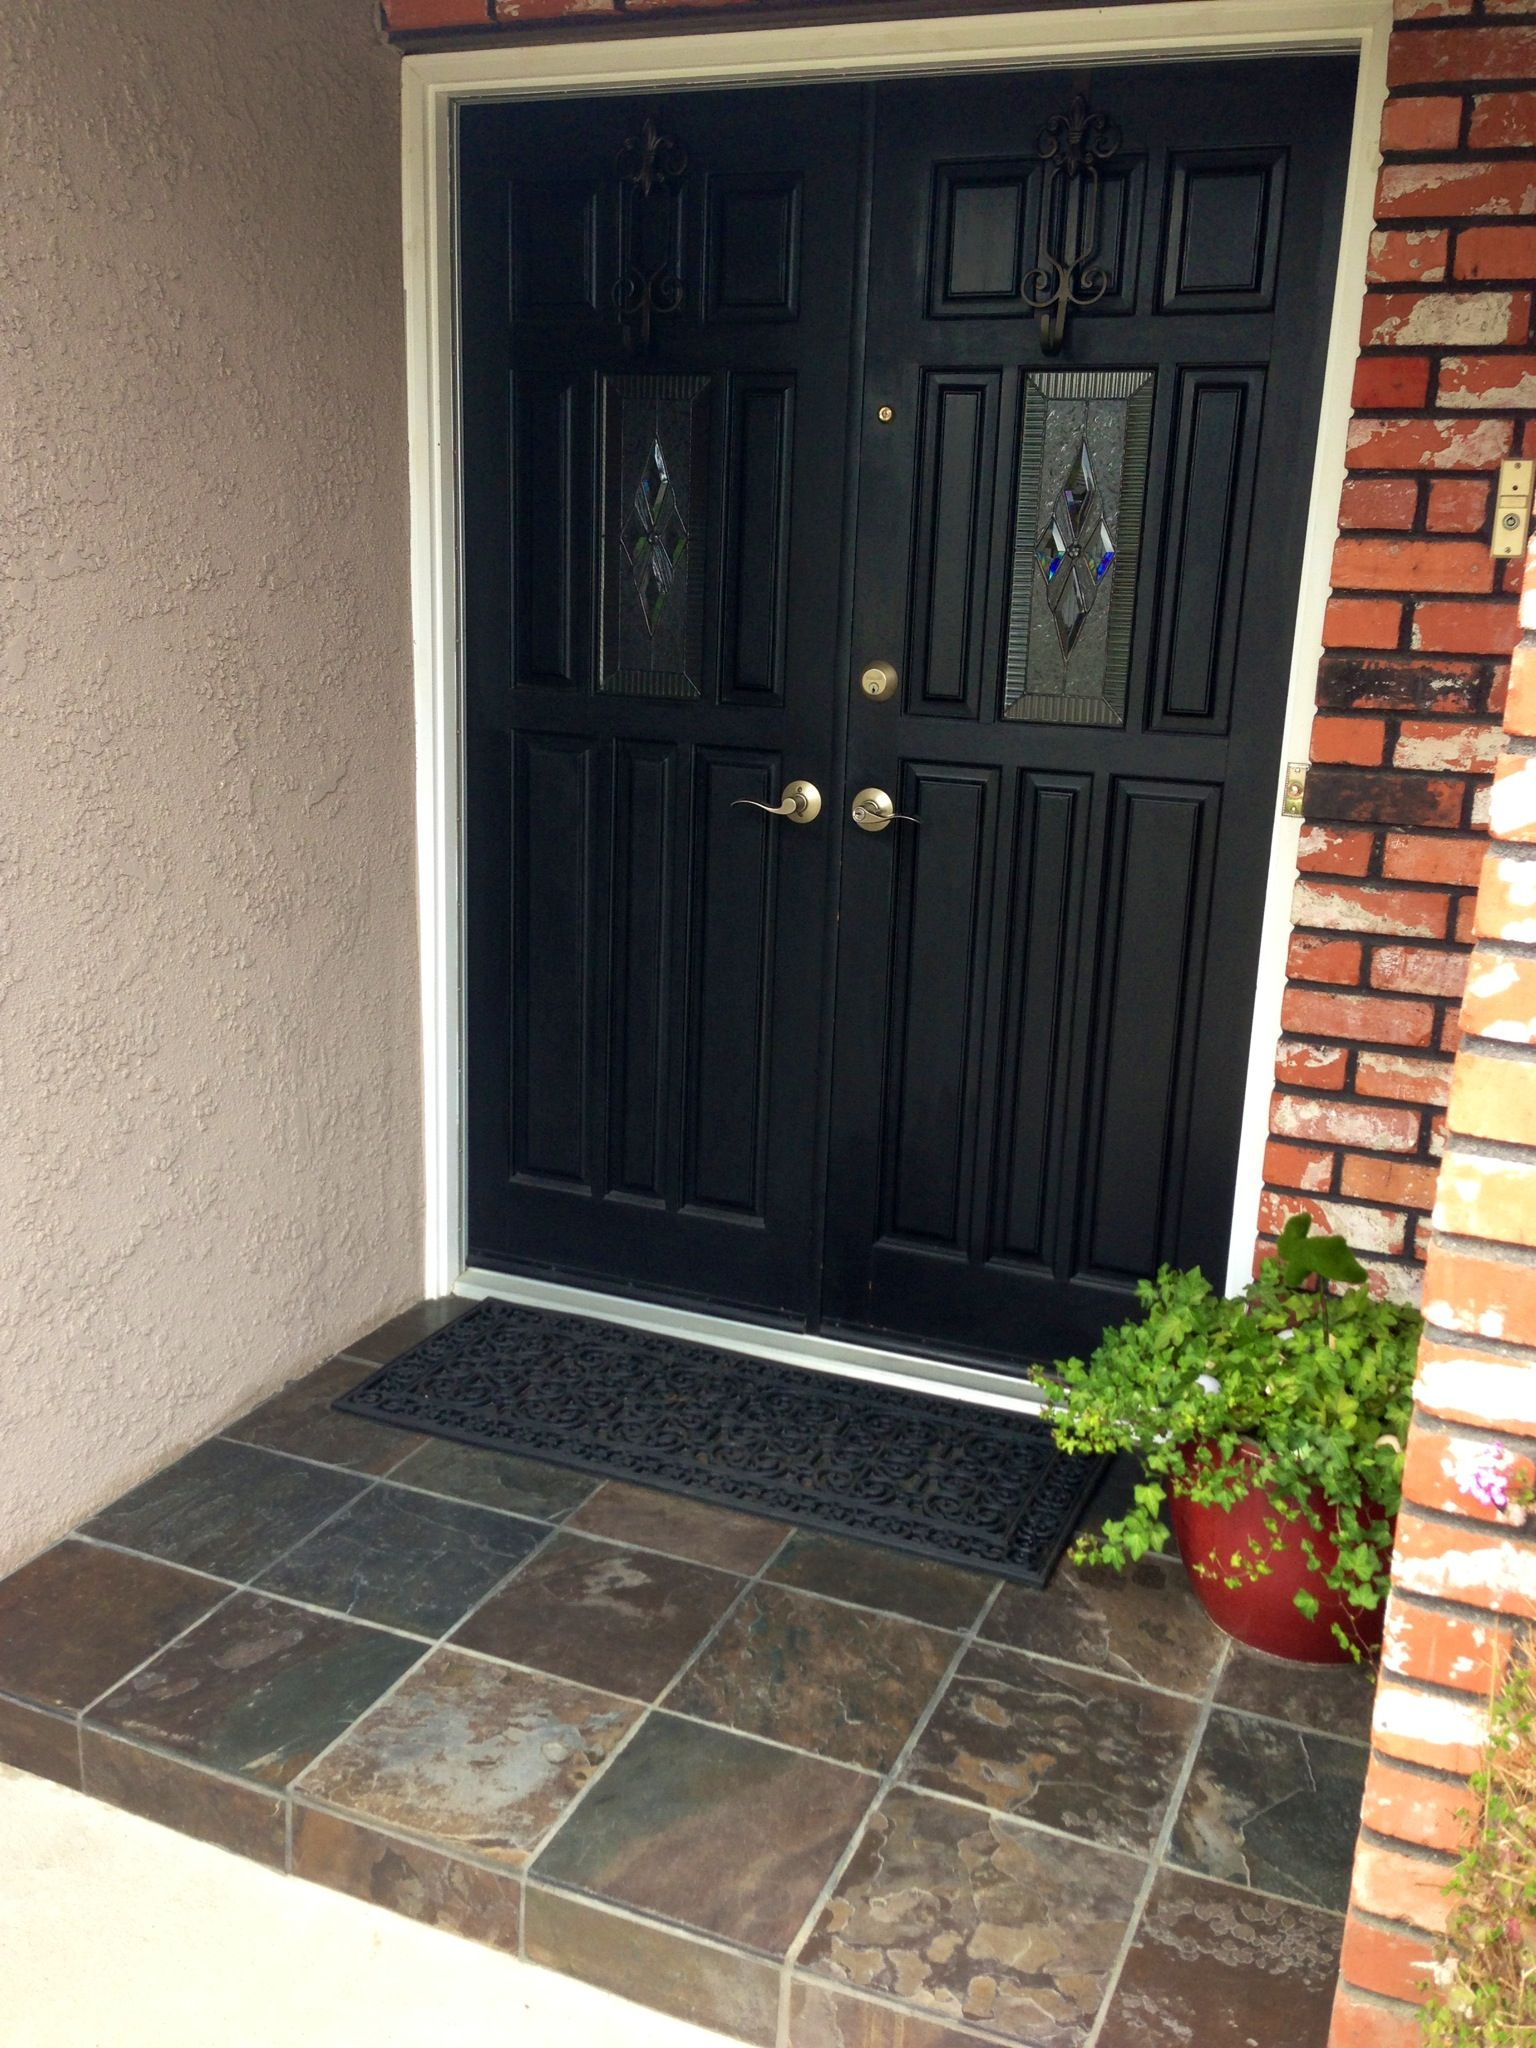 Best Slate Tile On Front Porch Dresses Up Entry Front Porch 400 x 300